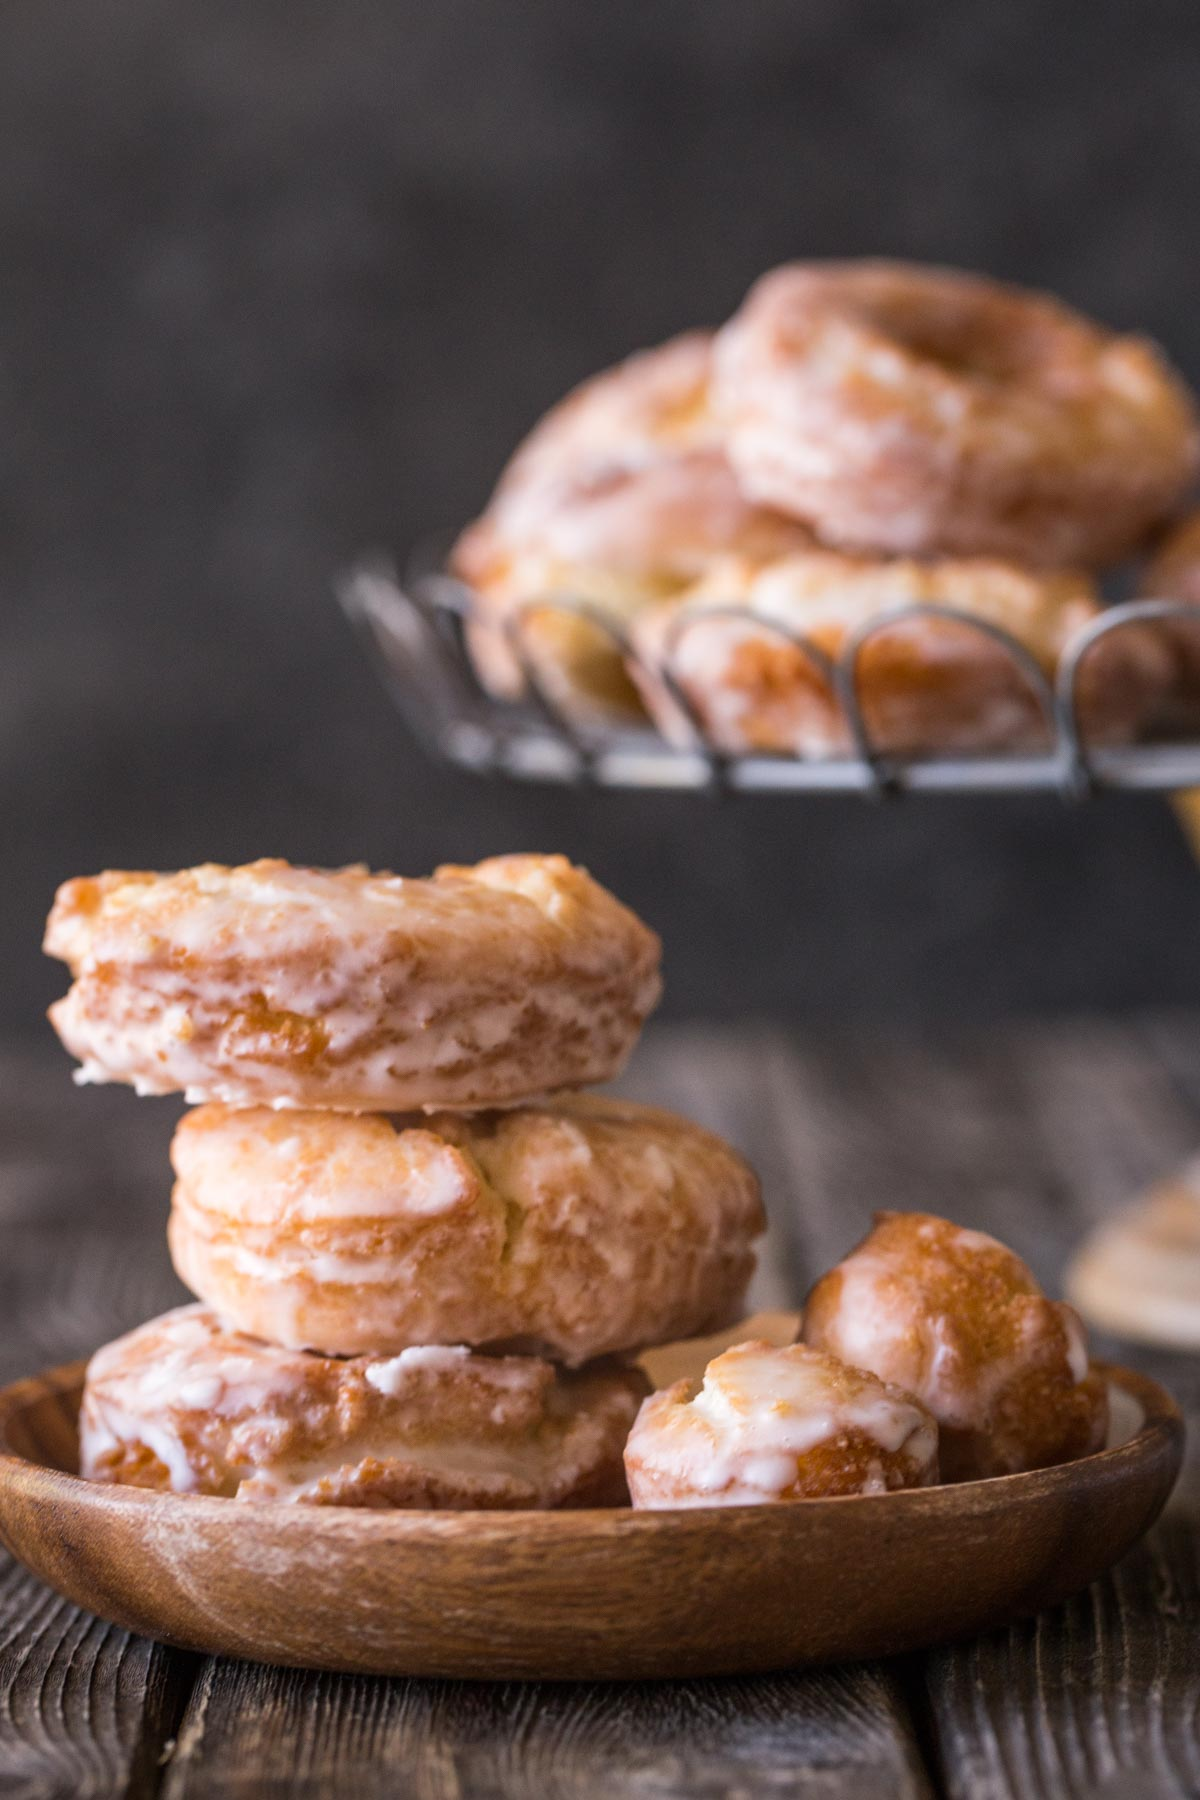 Stack of three Old Fashioned Buttermilk Donuts from the front view with a cake plate holding donuts in the background.